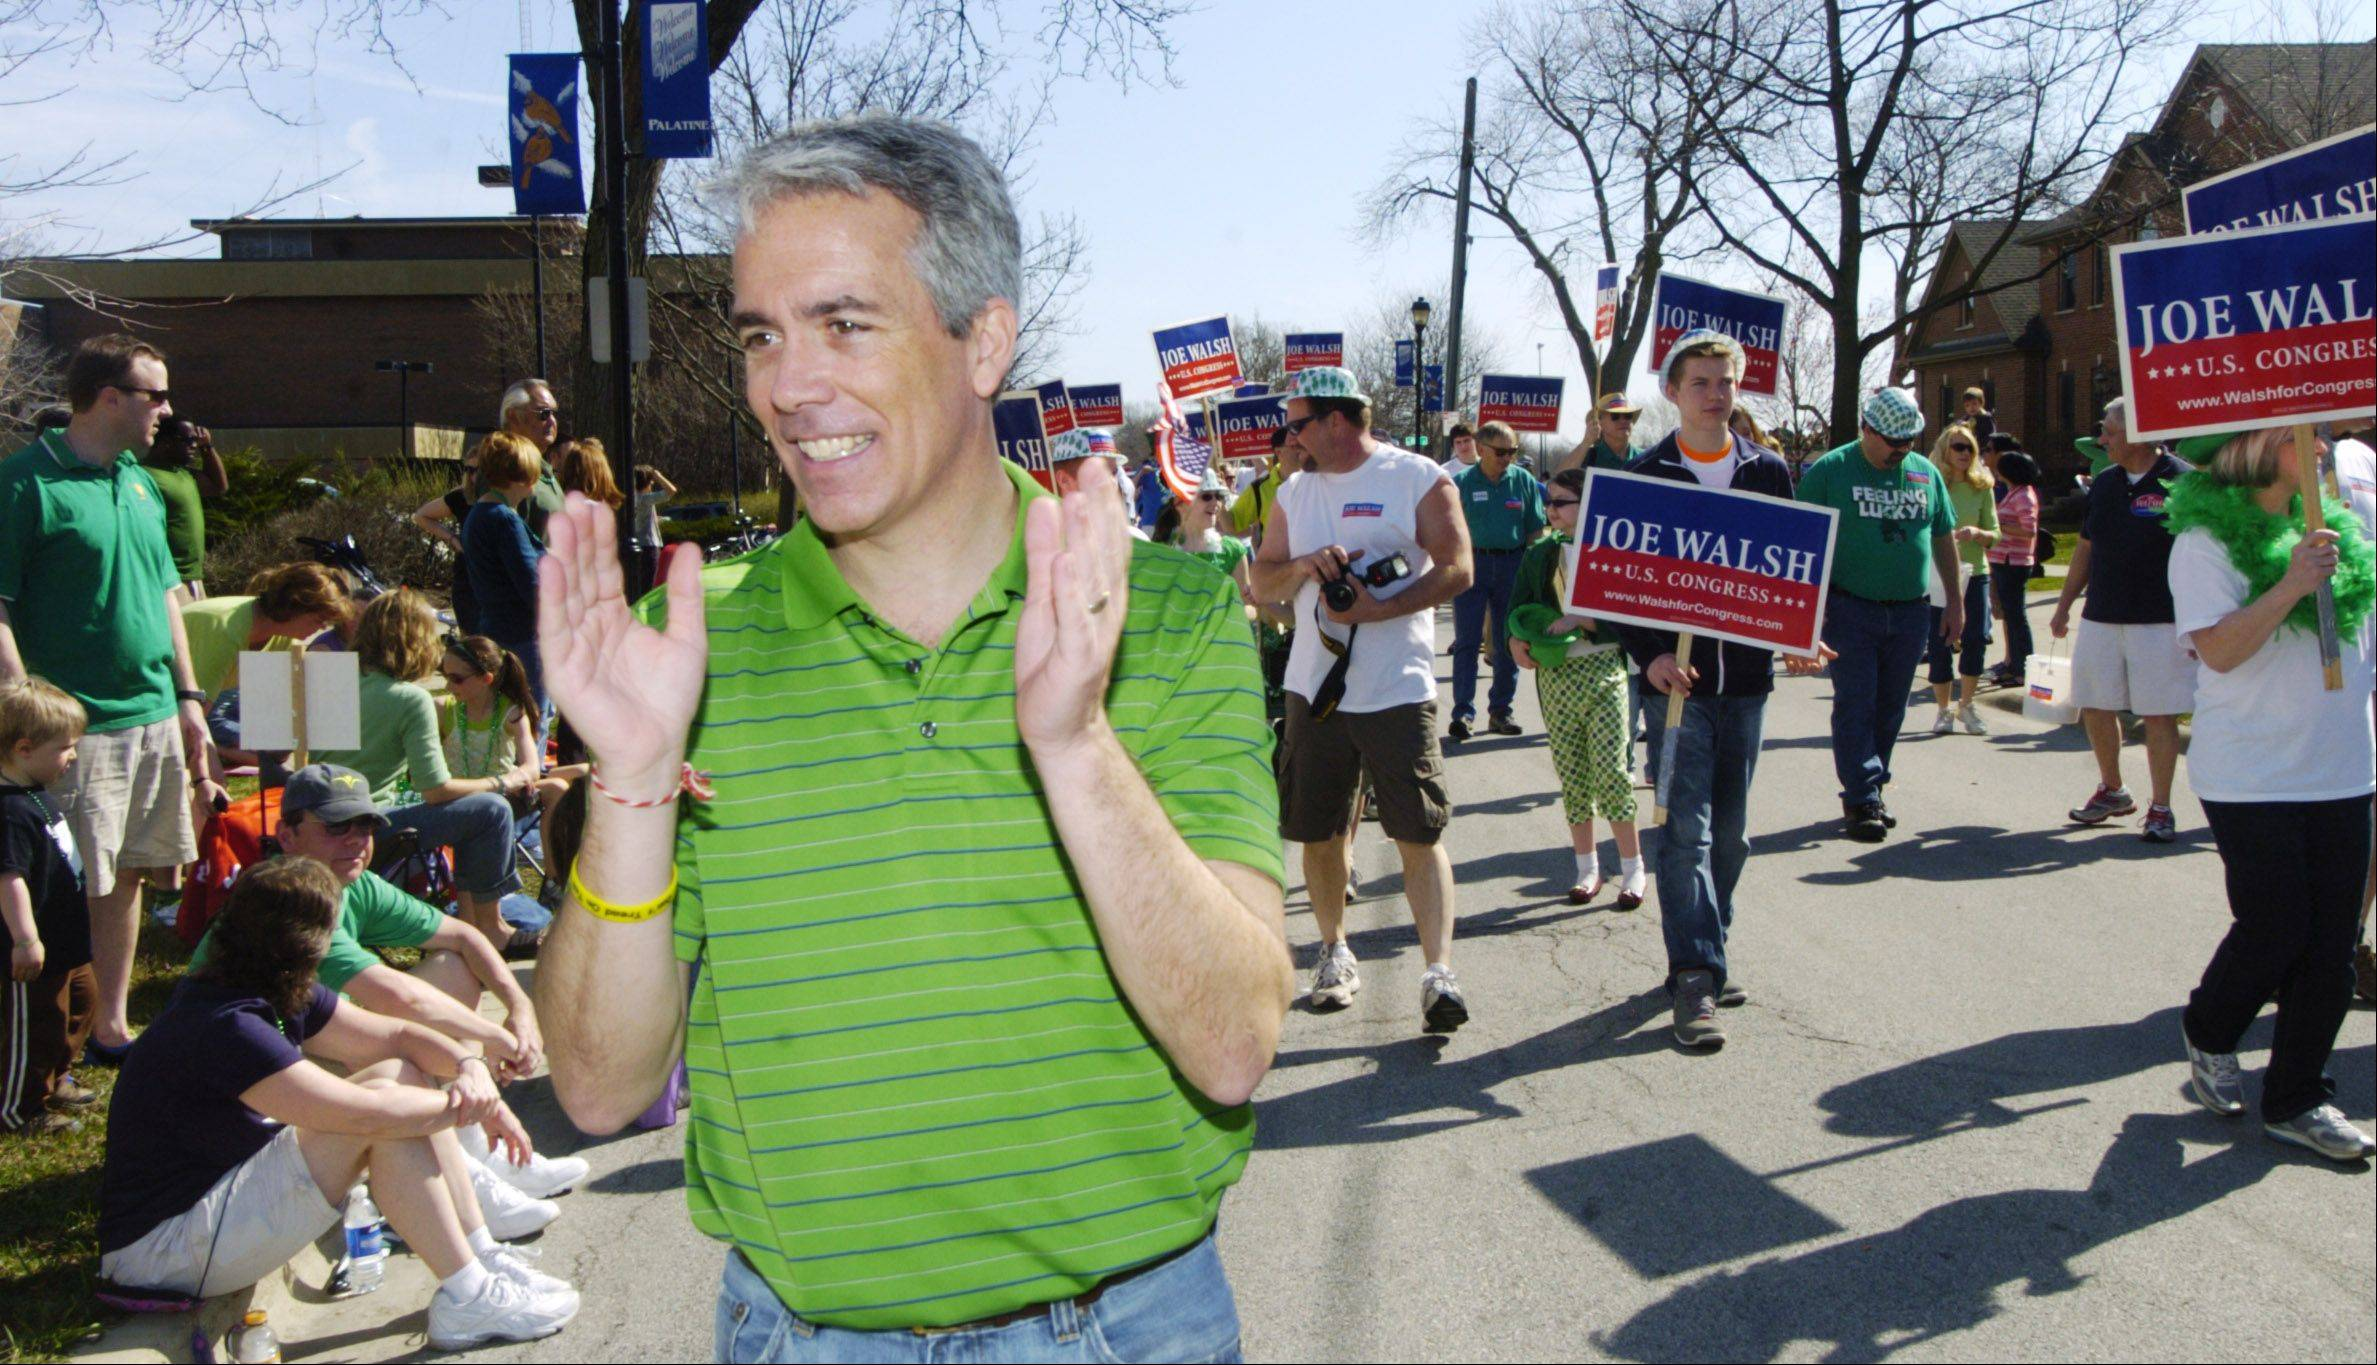 Republican Congressman Joe Walsh, the 8th District incumbent, greets members of the crowd lining Wood Street on Saturday during the Palatine St. Patrick's Day Parade.